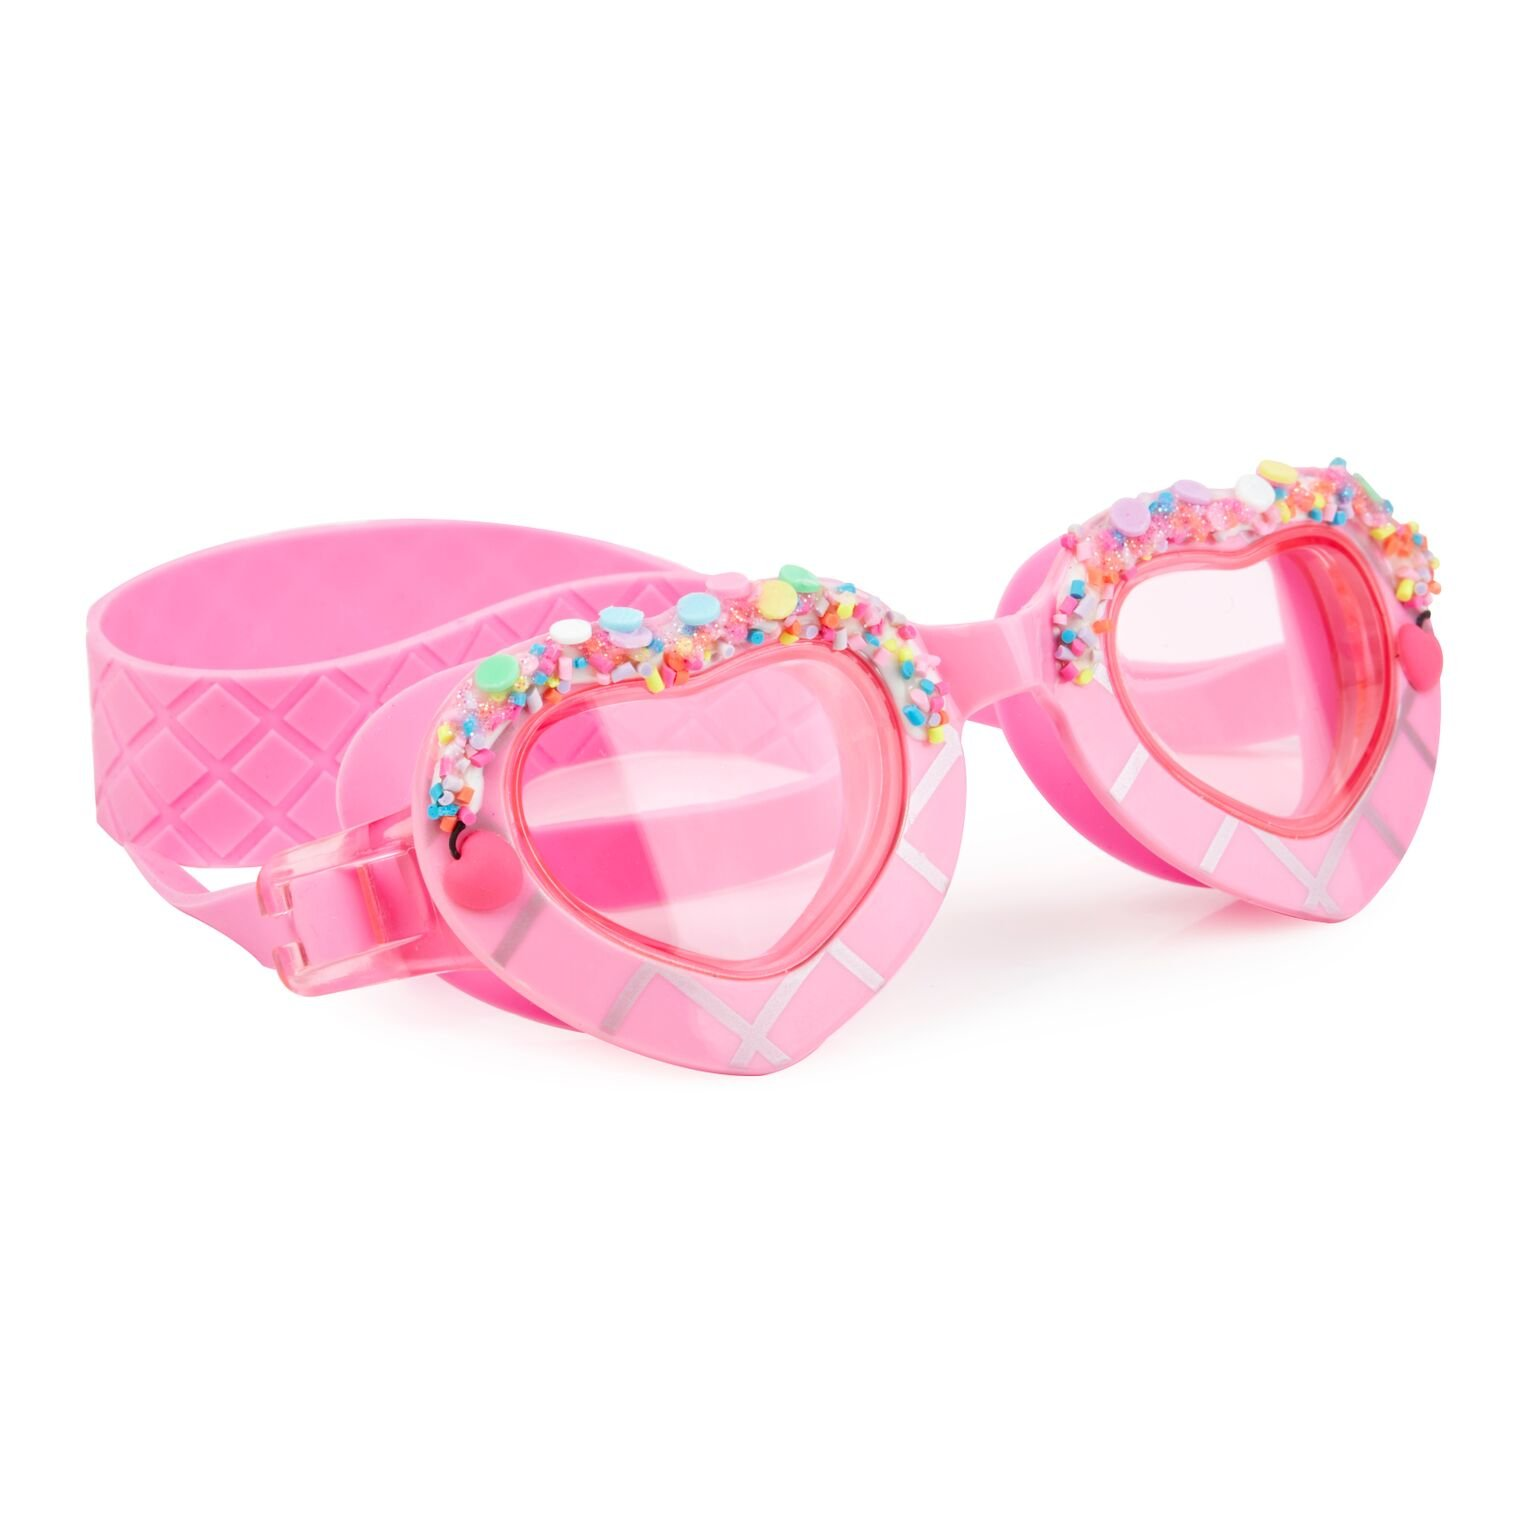 Heart Shaped Swimming Goggles For Kids by Bling2O - Anti Fog, No Leak, Non Slip and UV Protection - Float N Away Pink Fun Water Accessory Includes Hard Case